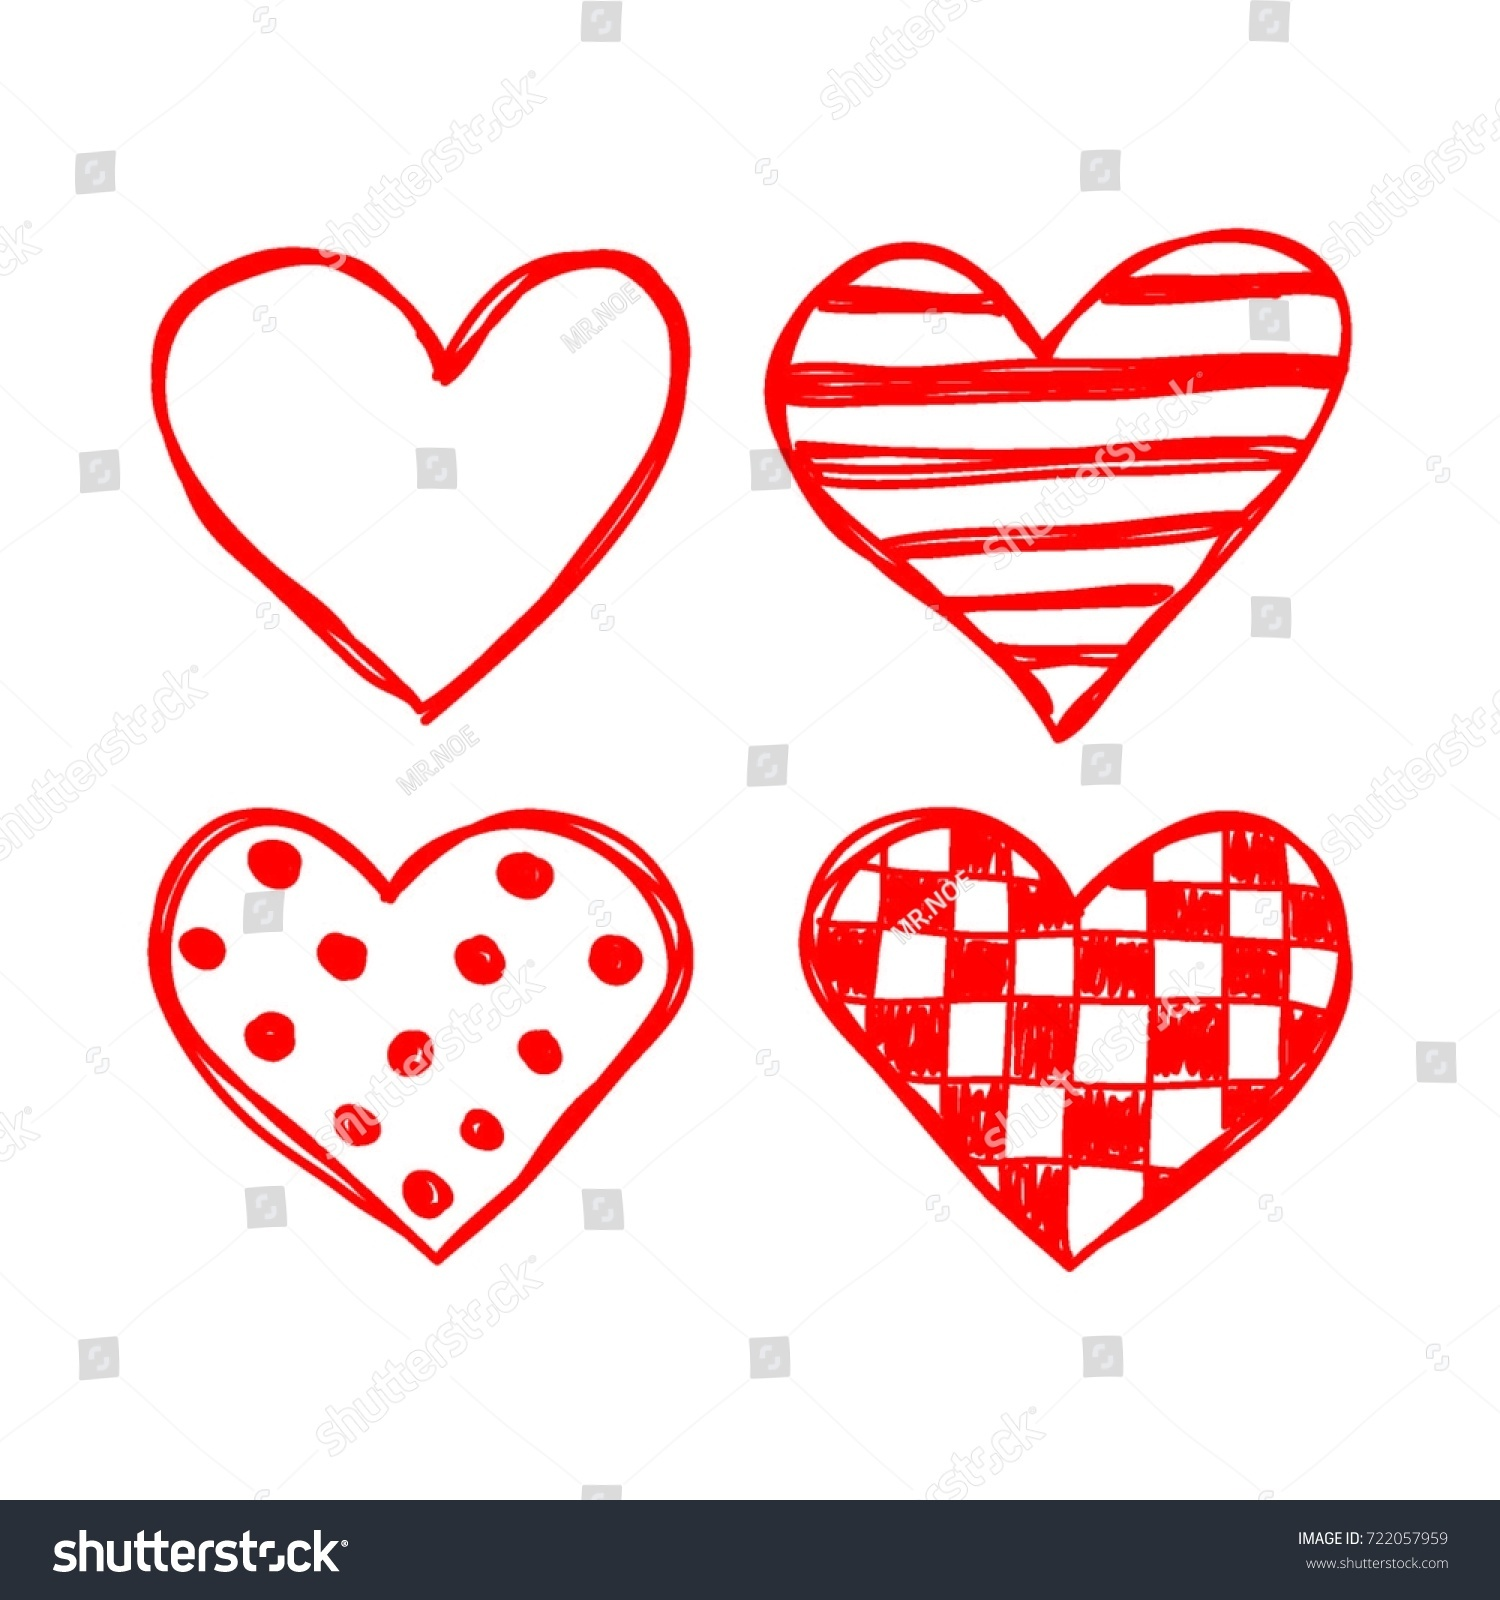 heart sketches vector stock vector (2018) 722057959 - shutterstock